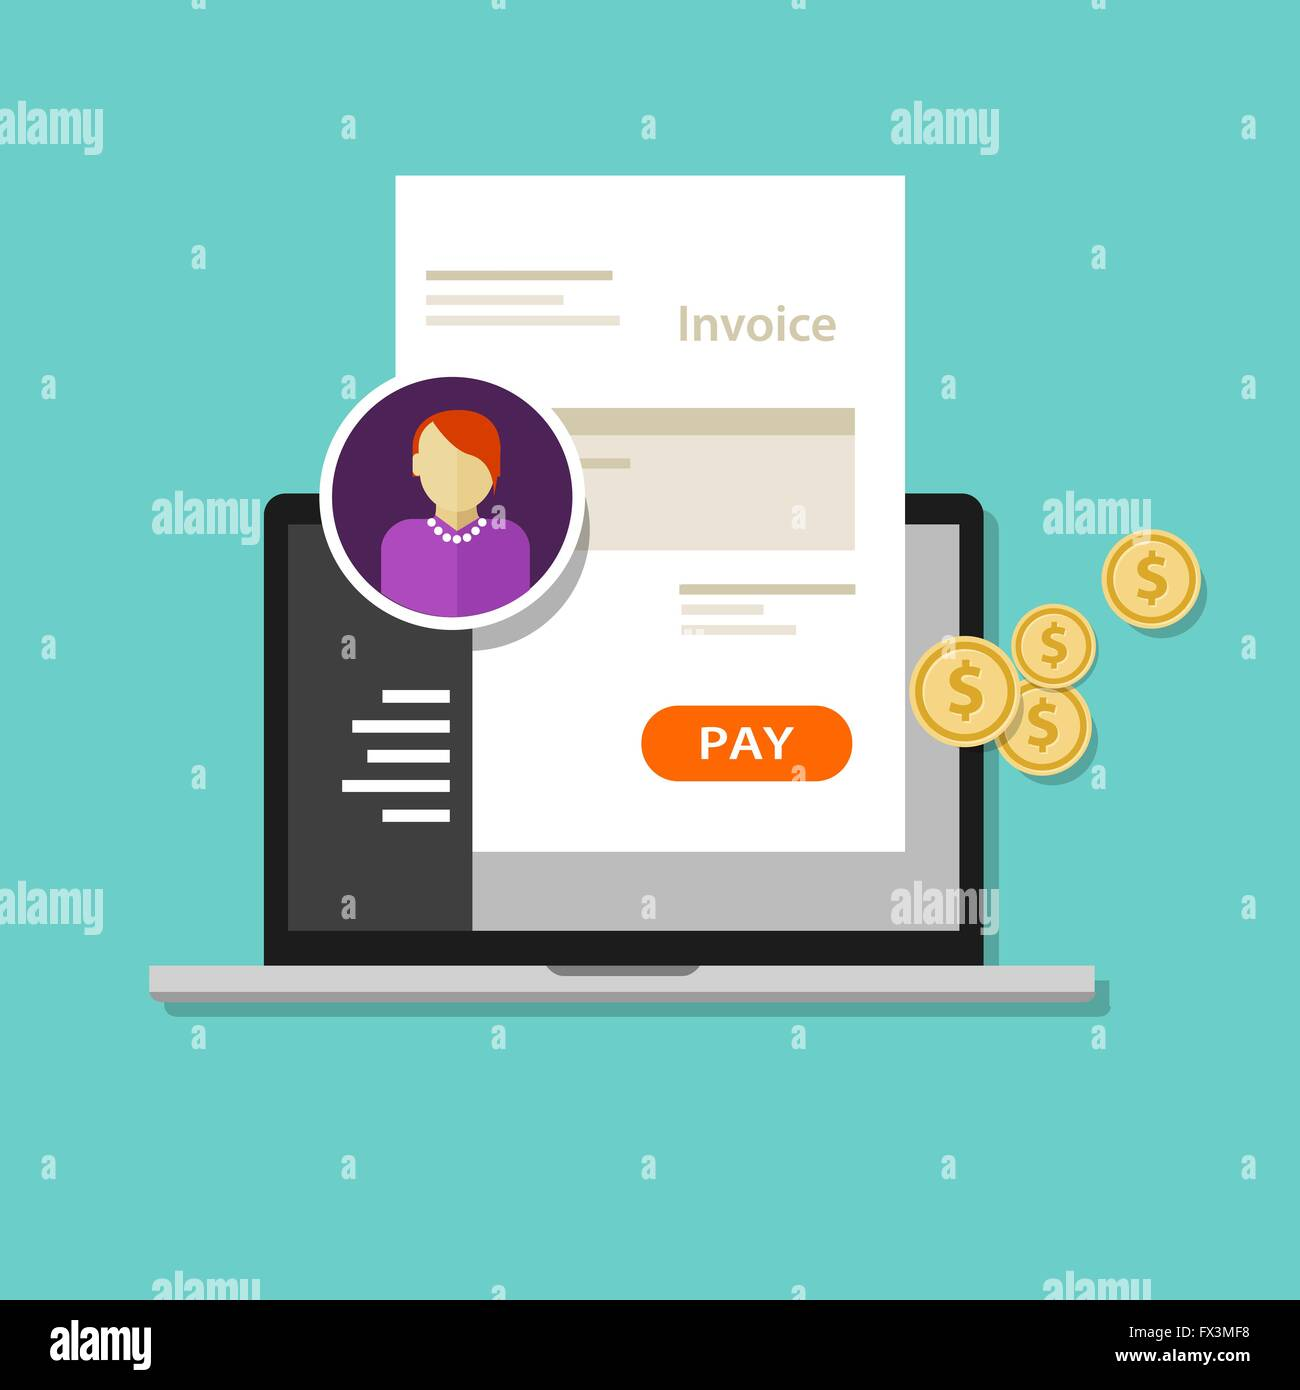 Invoice Invoicing Online Service Pay Stock Vector Art Illustration - Online invoice service